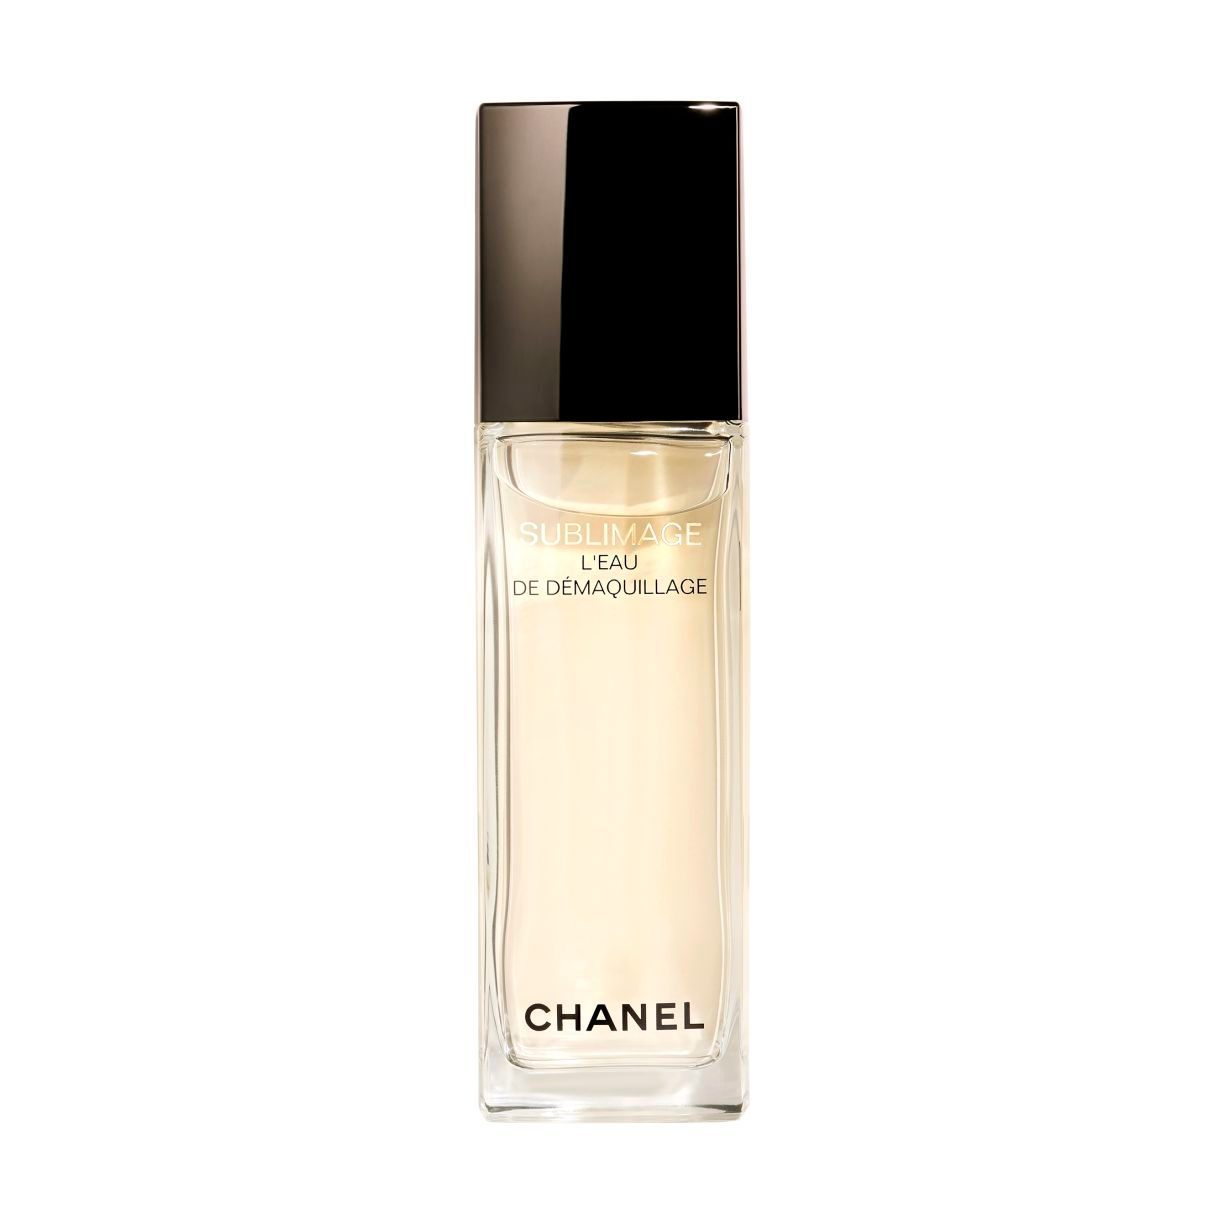 SUBLIMAGE L'EAU DE DÉMAQUILLAGE REFRESHING AND RADIANCE-REVEALING CLEANSING WATER 125ml